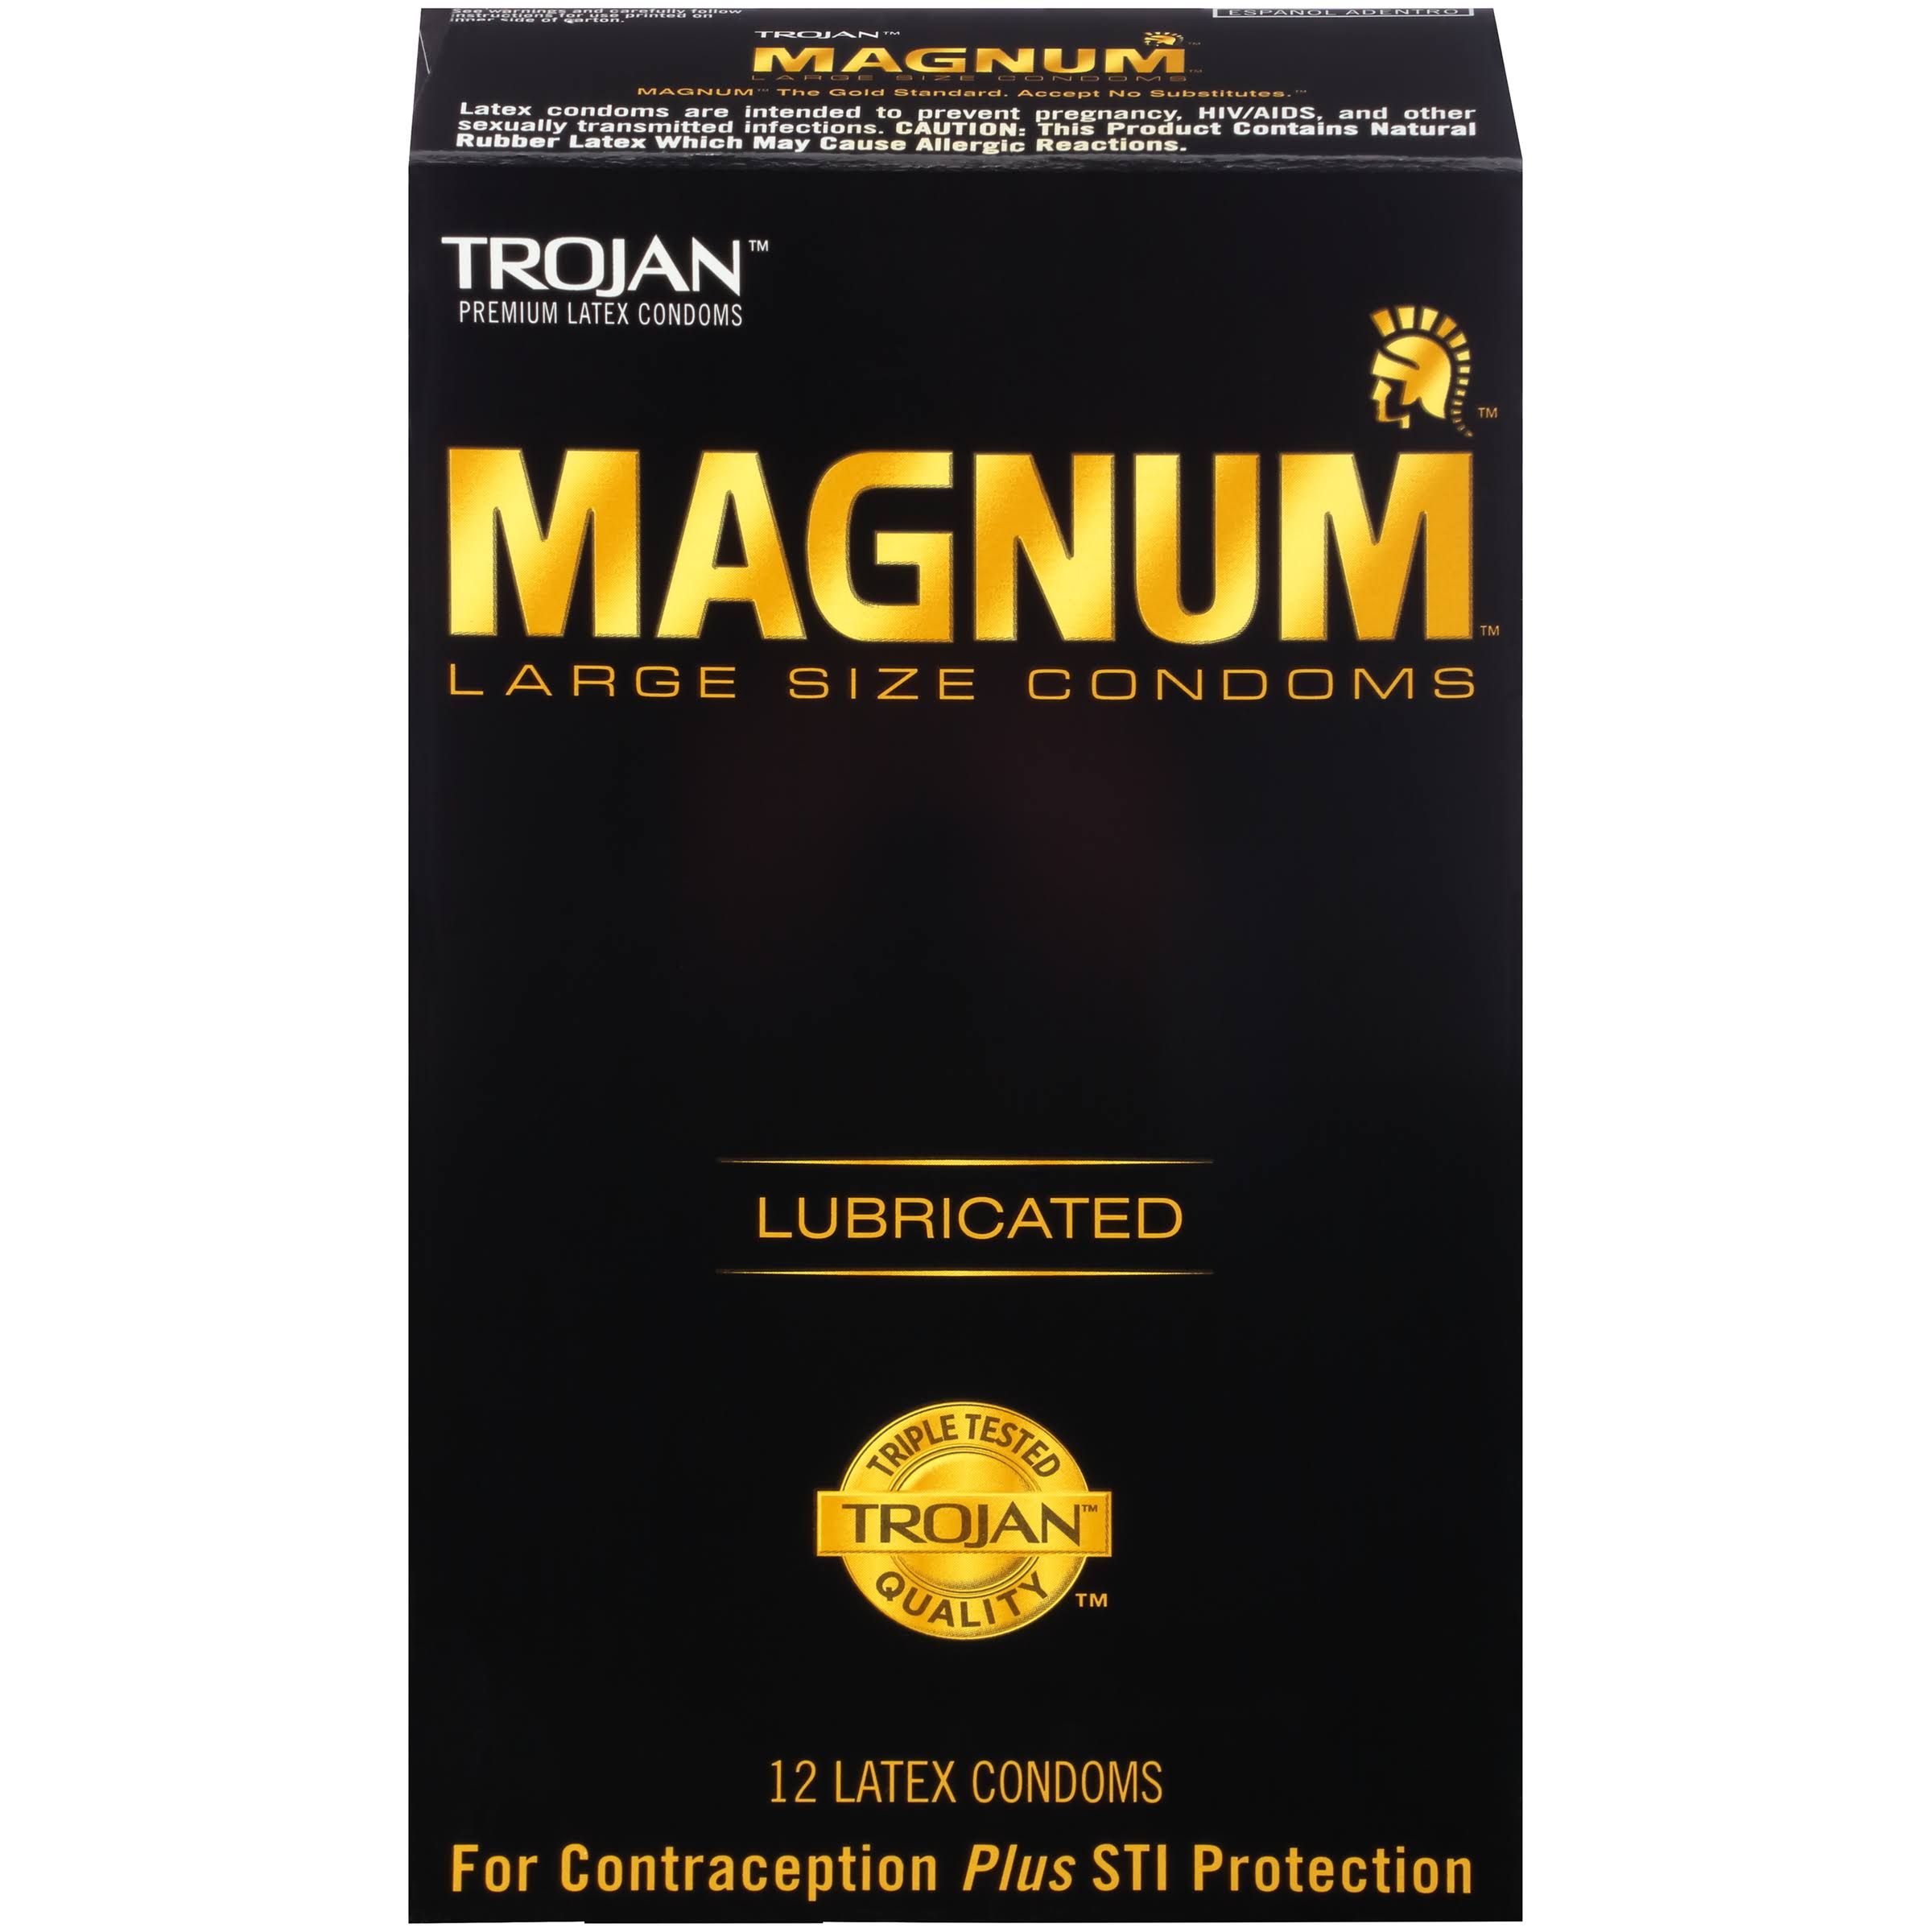 Trojan Magnum Lubricated Latex Condoms - 12ct, Large